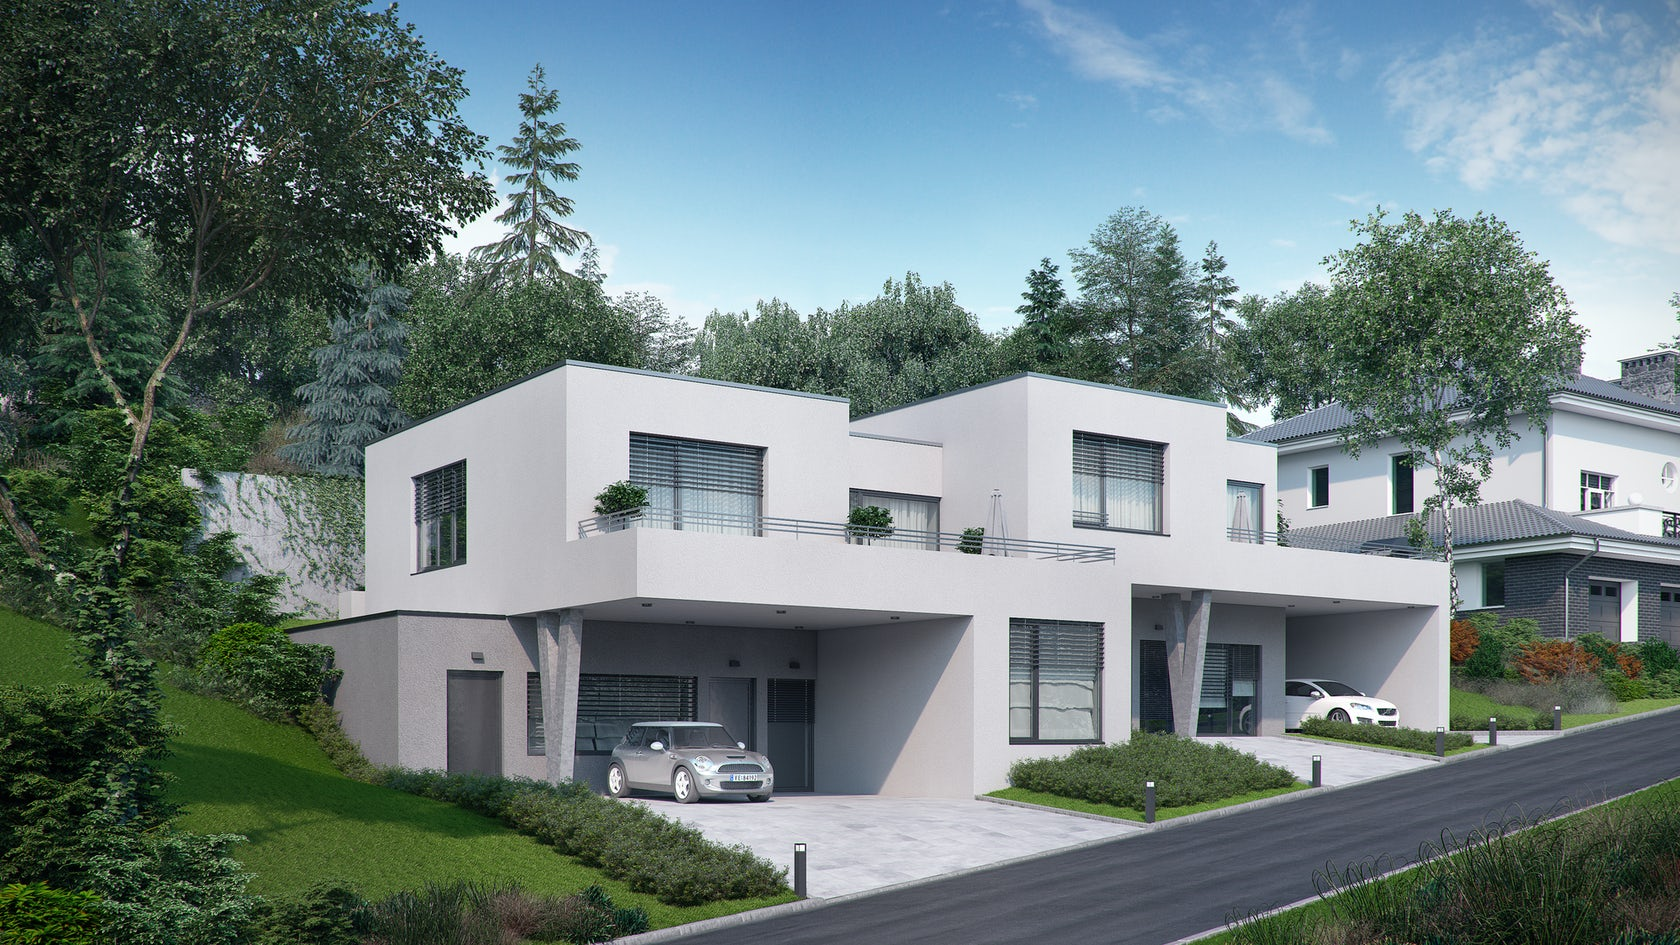 Duplex house in walding architizer for Duplex project homes